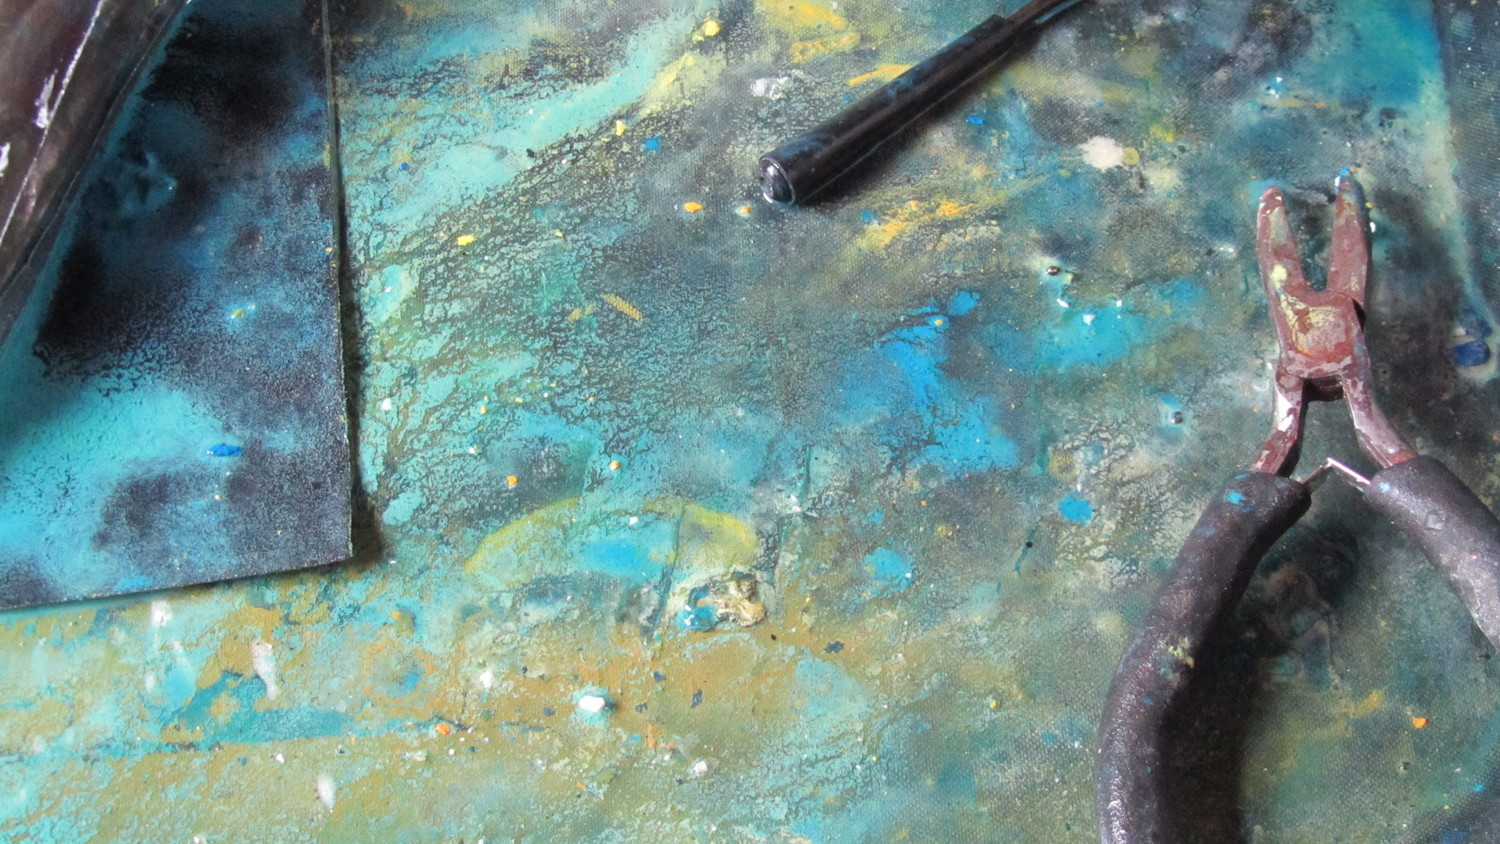 Jade Mellor's Work bench during wet-work. The resin residue makes patterns on the sandpaper.